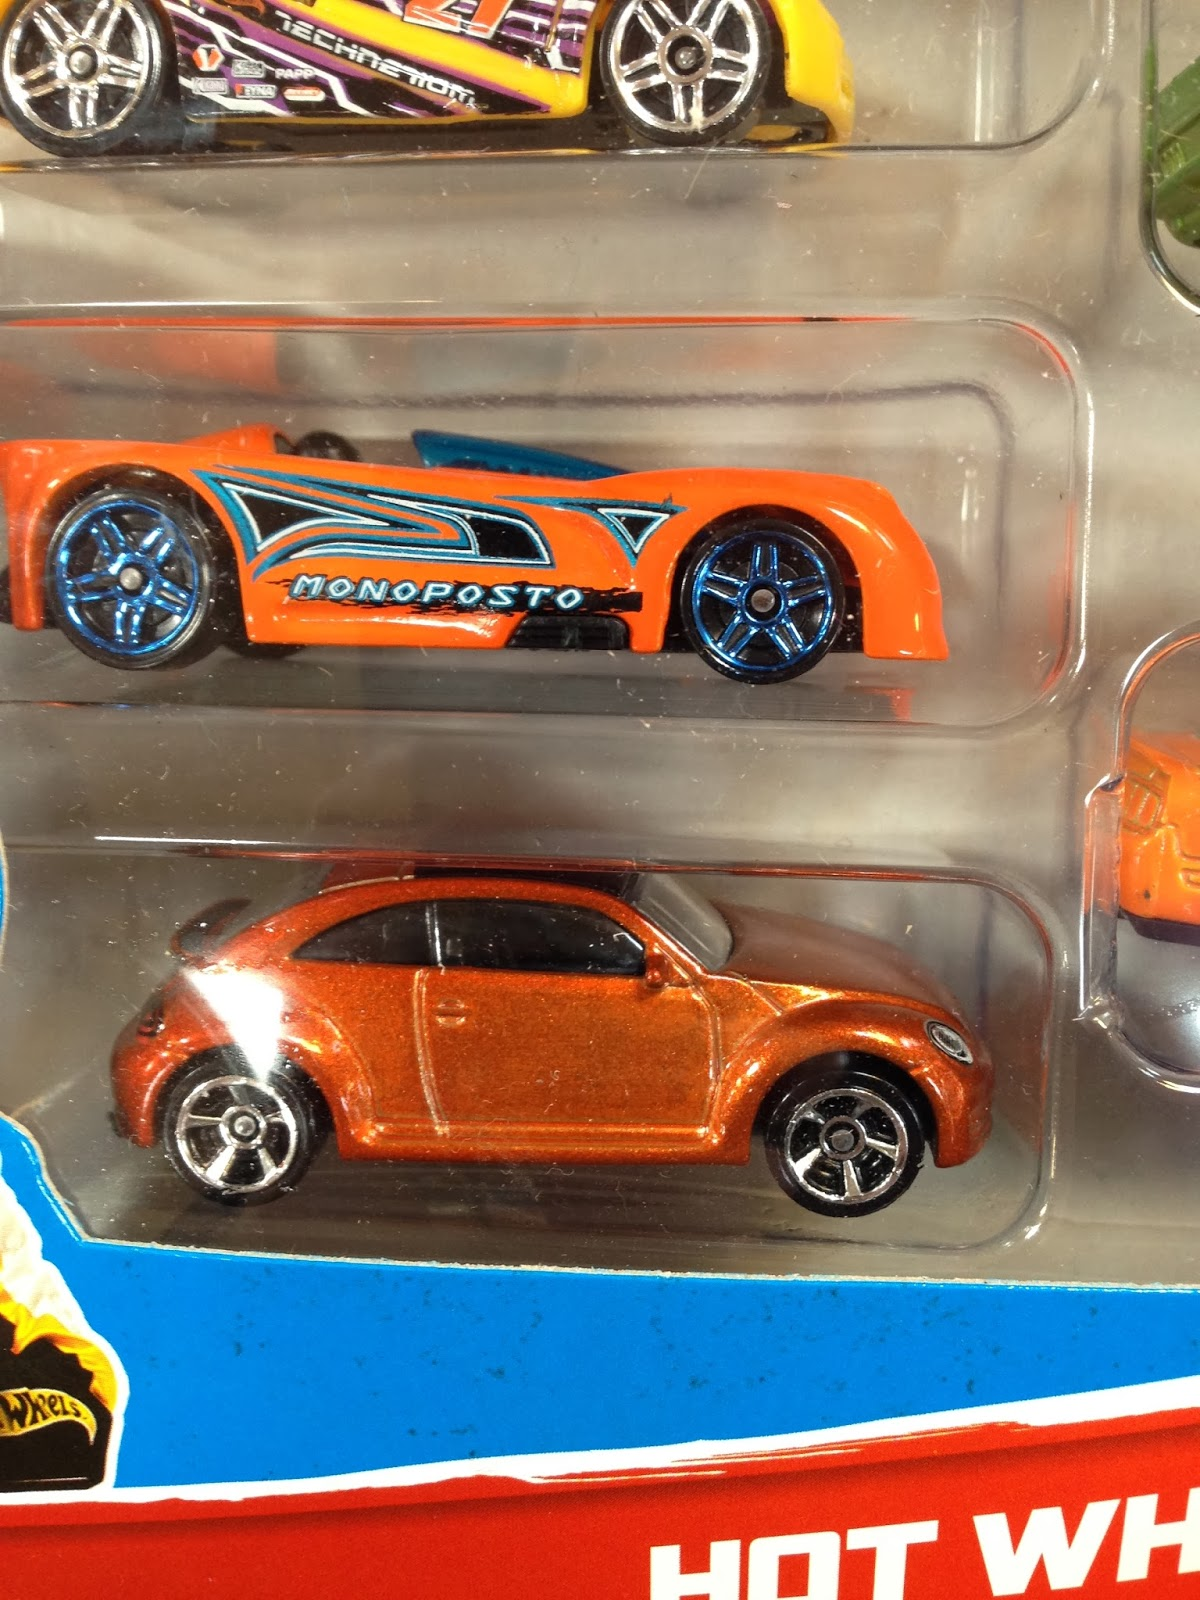 hot wheels cars 2014 displaying 17 images for hot wheels cars 2014